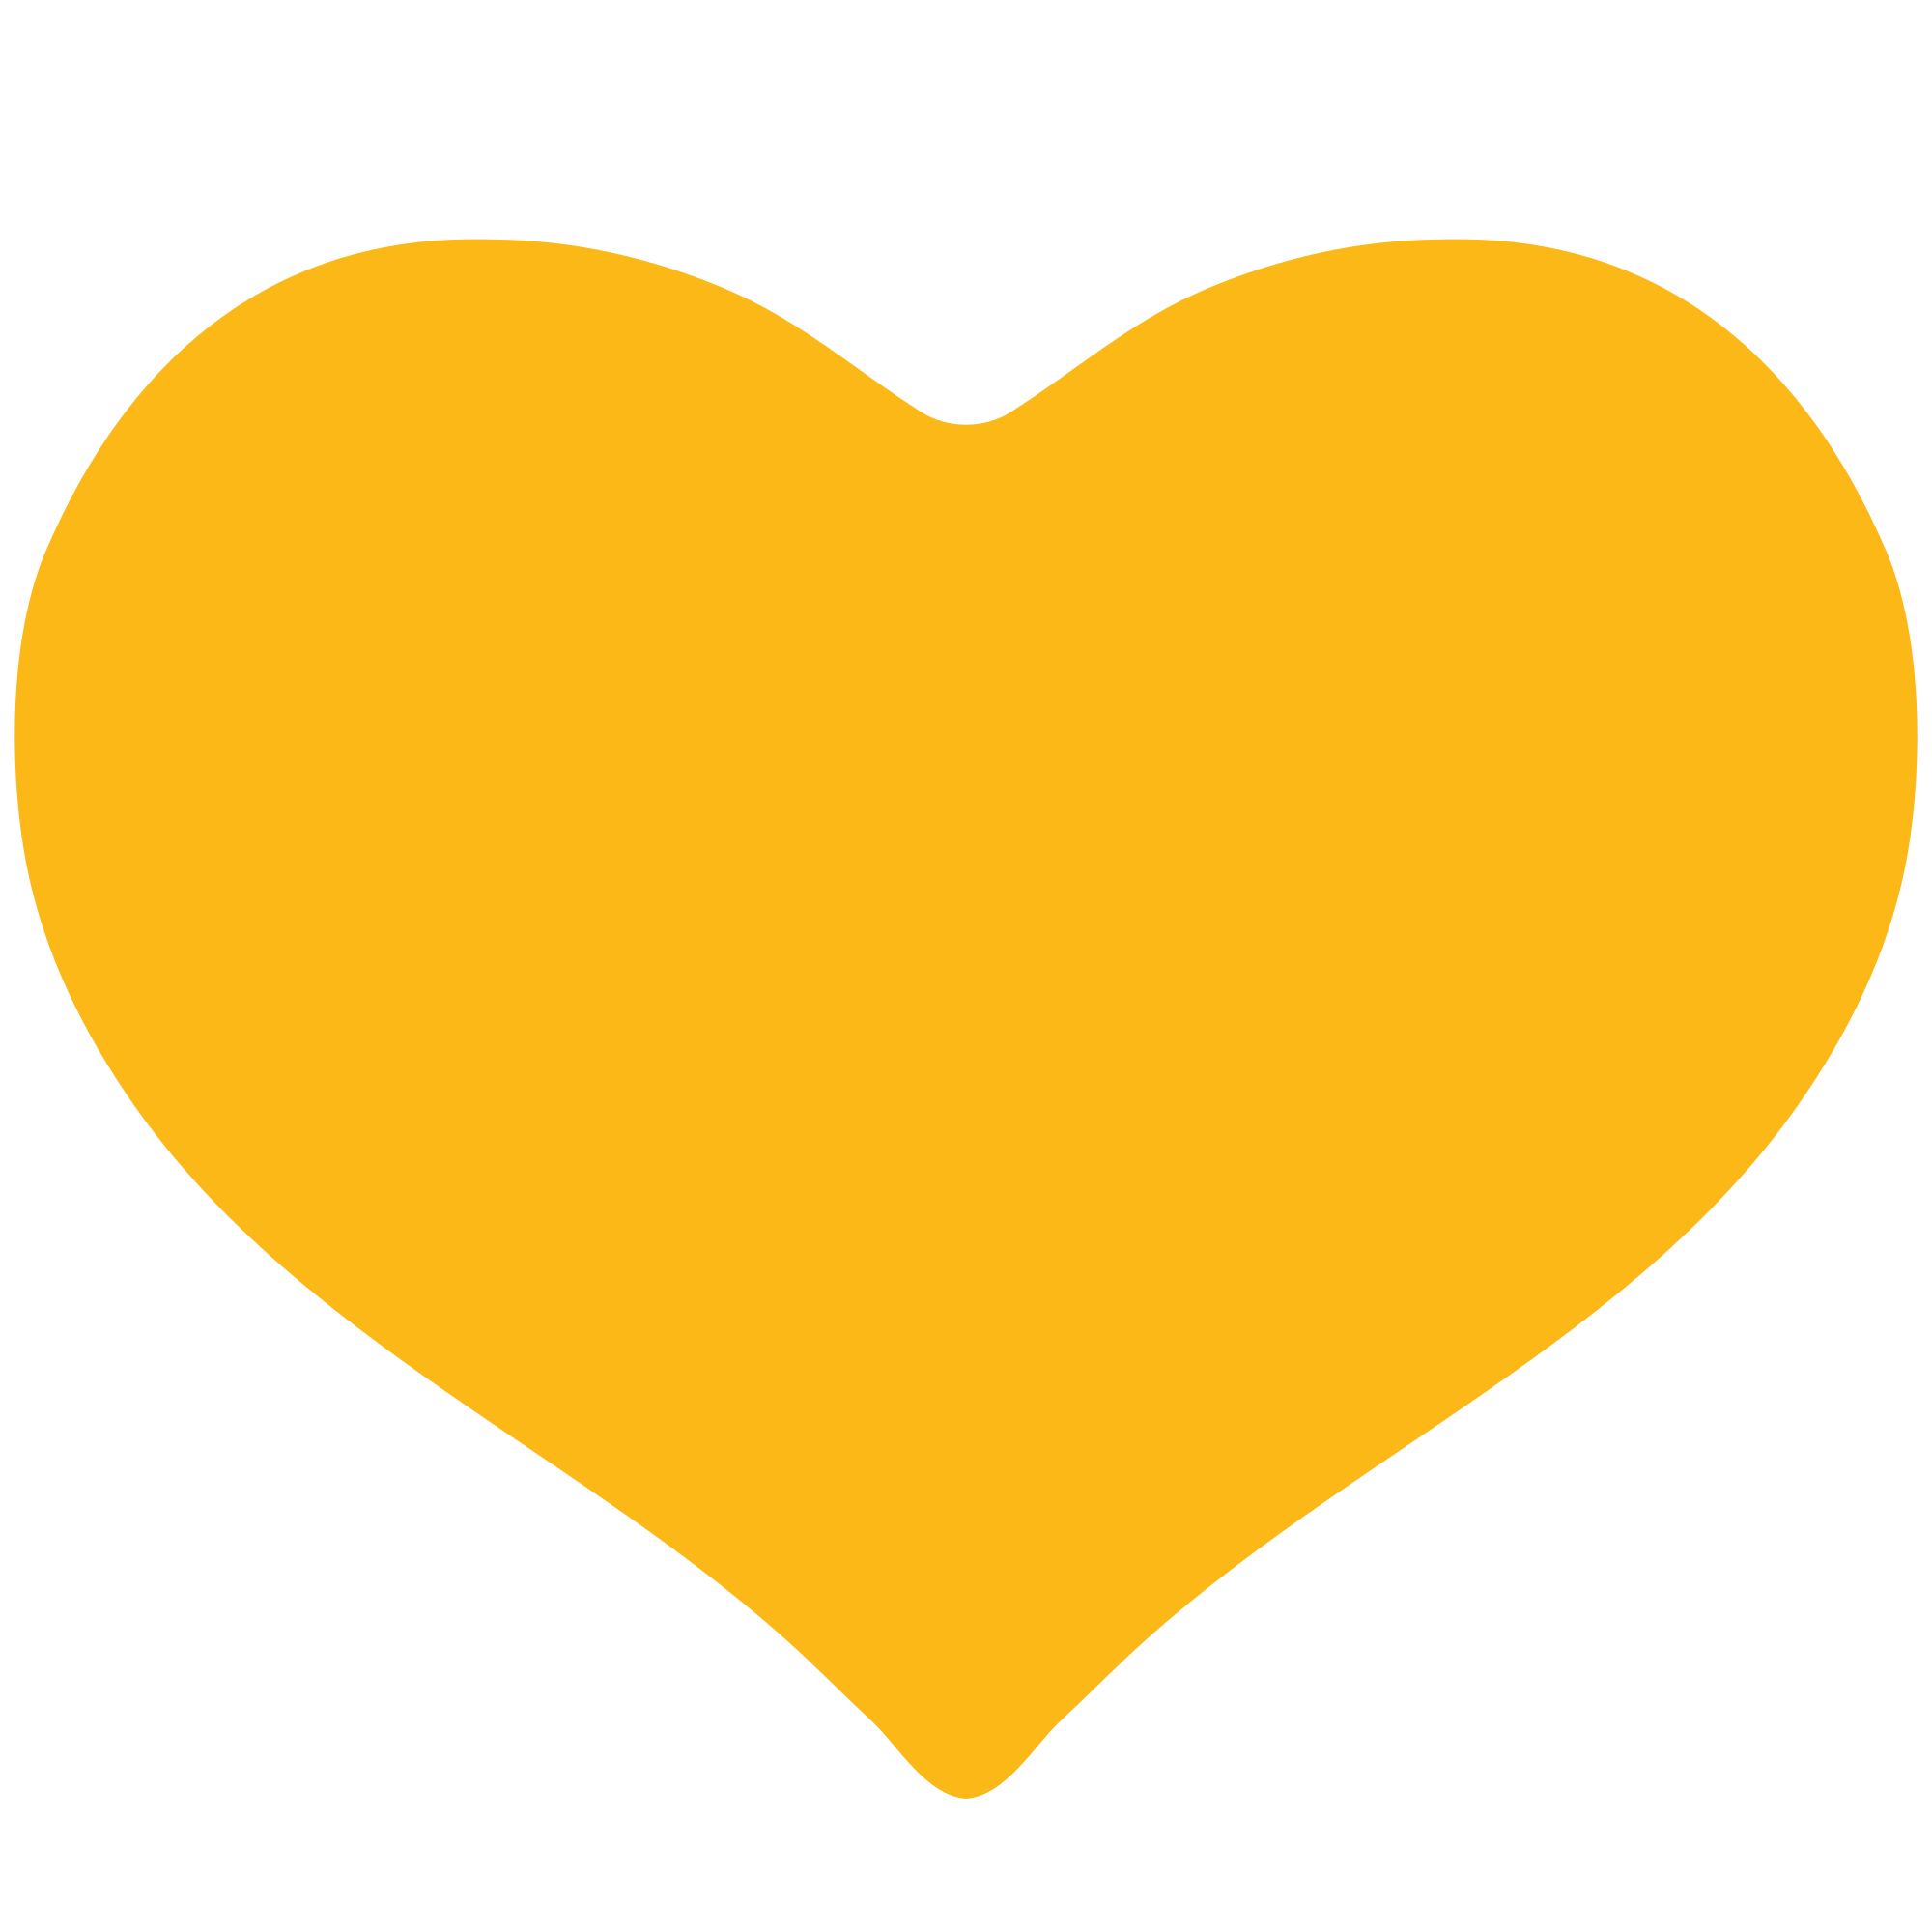 Download Yellow Heart Clipart HQ PNG Image.